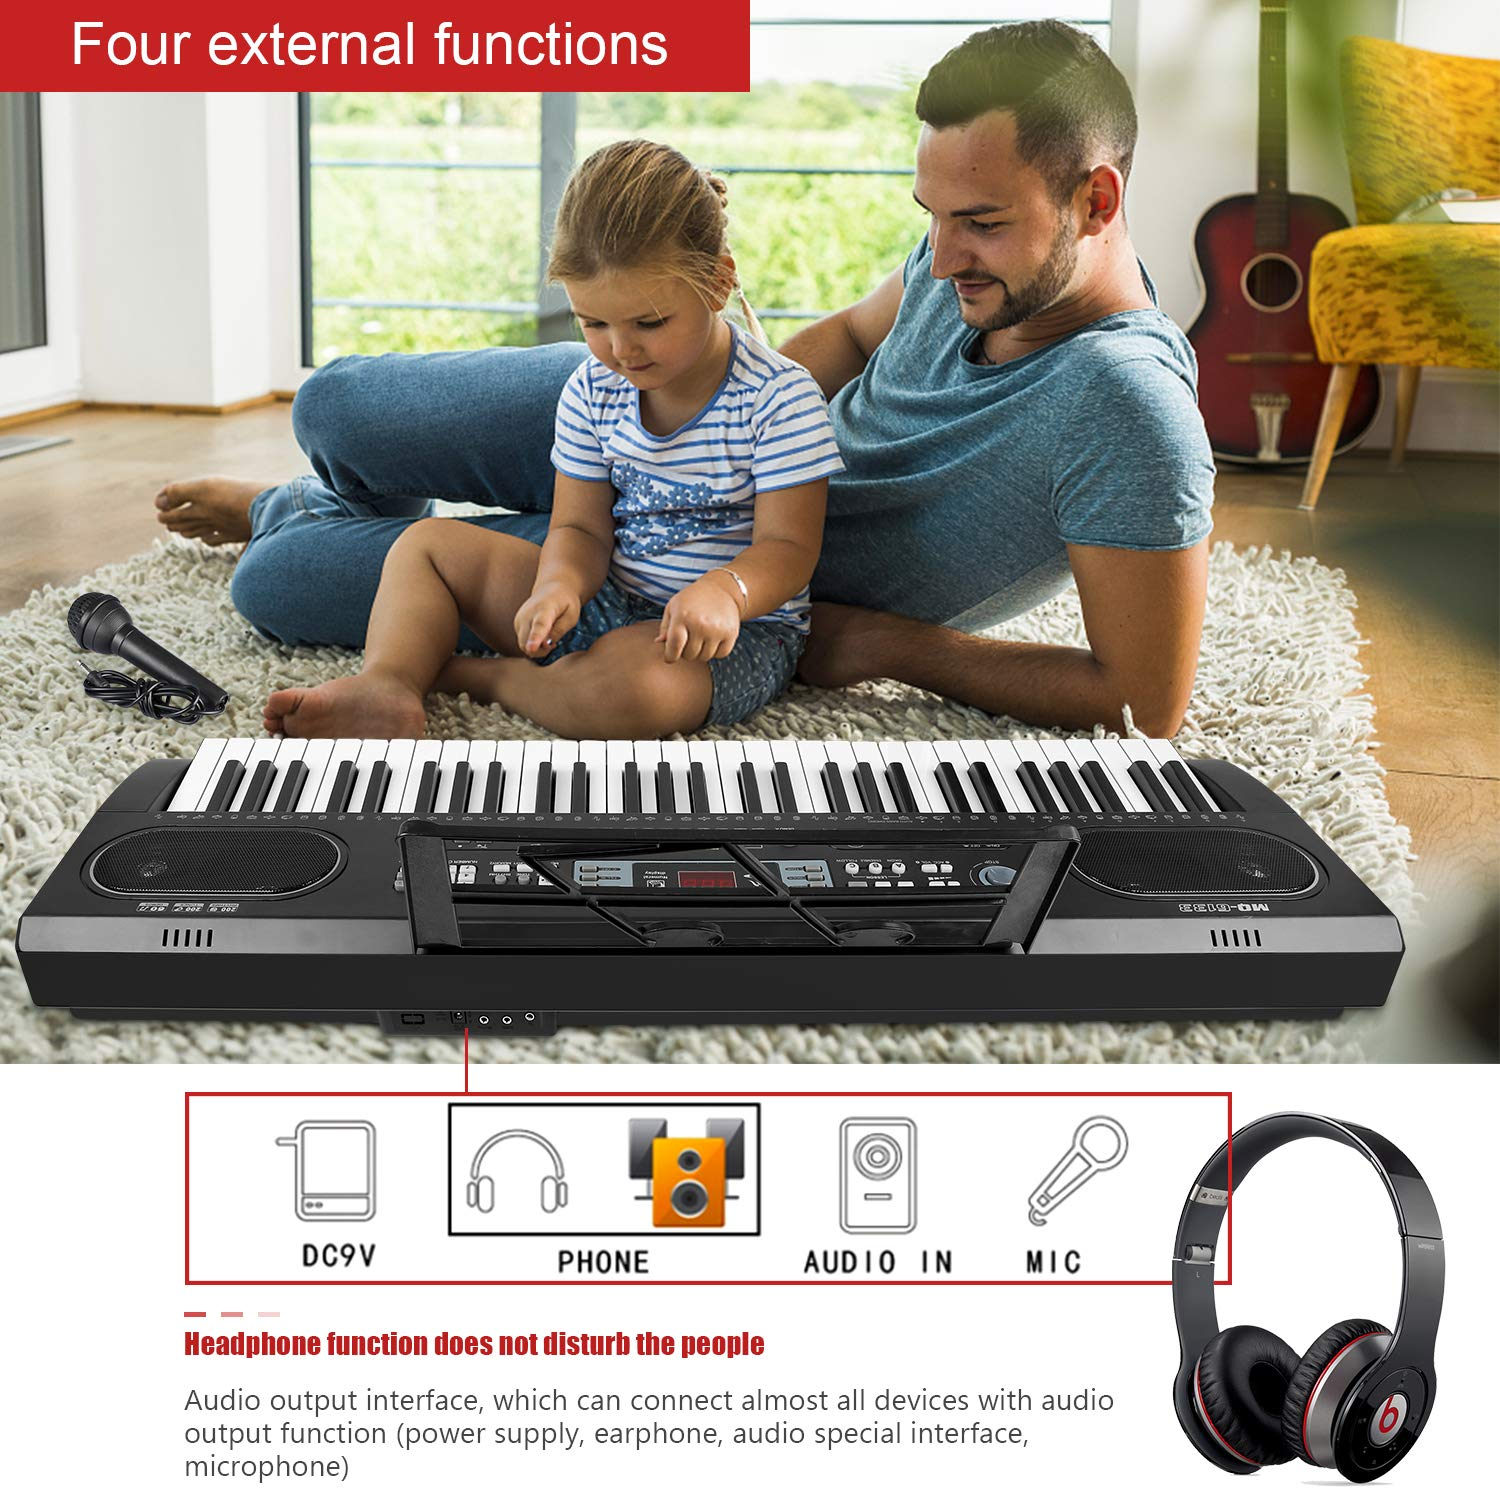 ZJTL 61-Key Digital Electric Piano Keyboard &Music Stand &microphone- Portable Electronic Keyboard (Kids & Adults) MQ-6133 by ZJTL (Image #6)